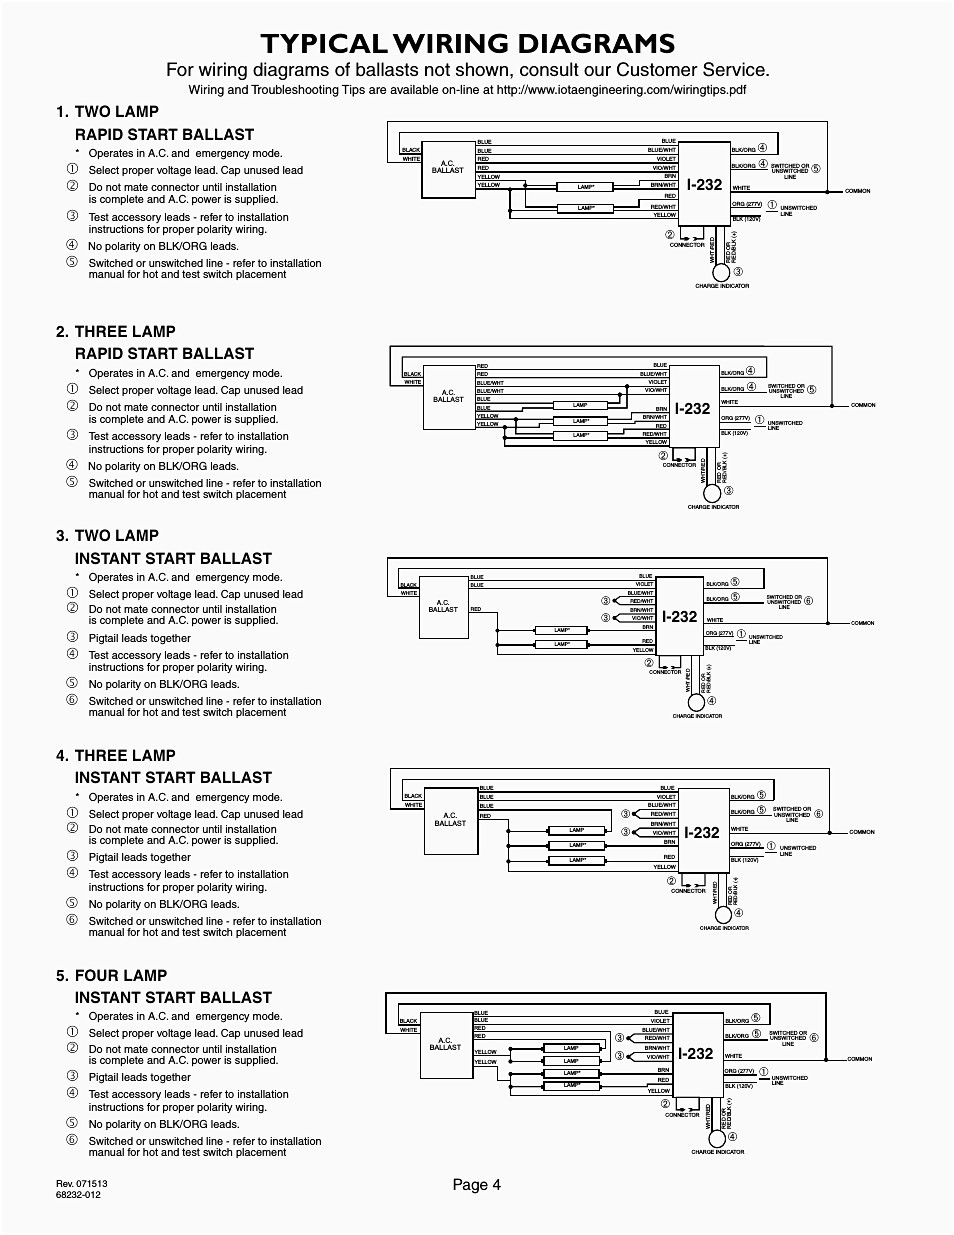 Icn4s5490c2lsg Wiring Diagram - Catalogue of Schemas on